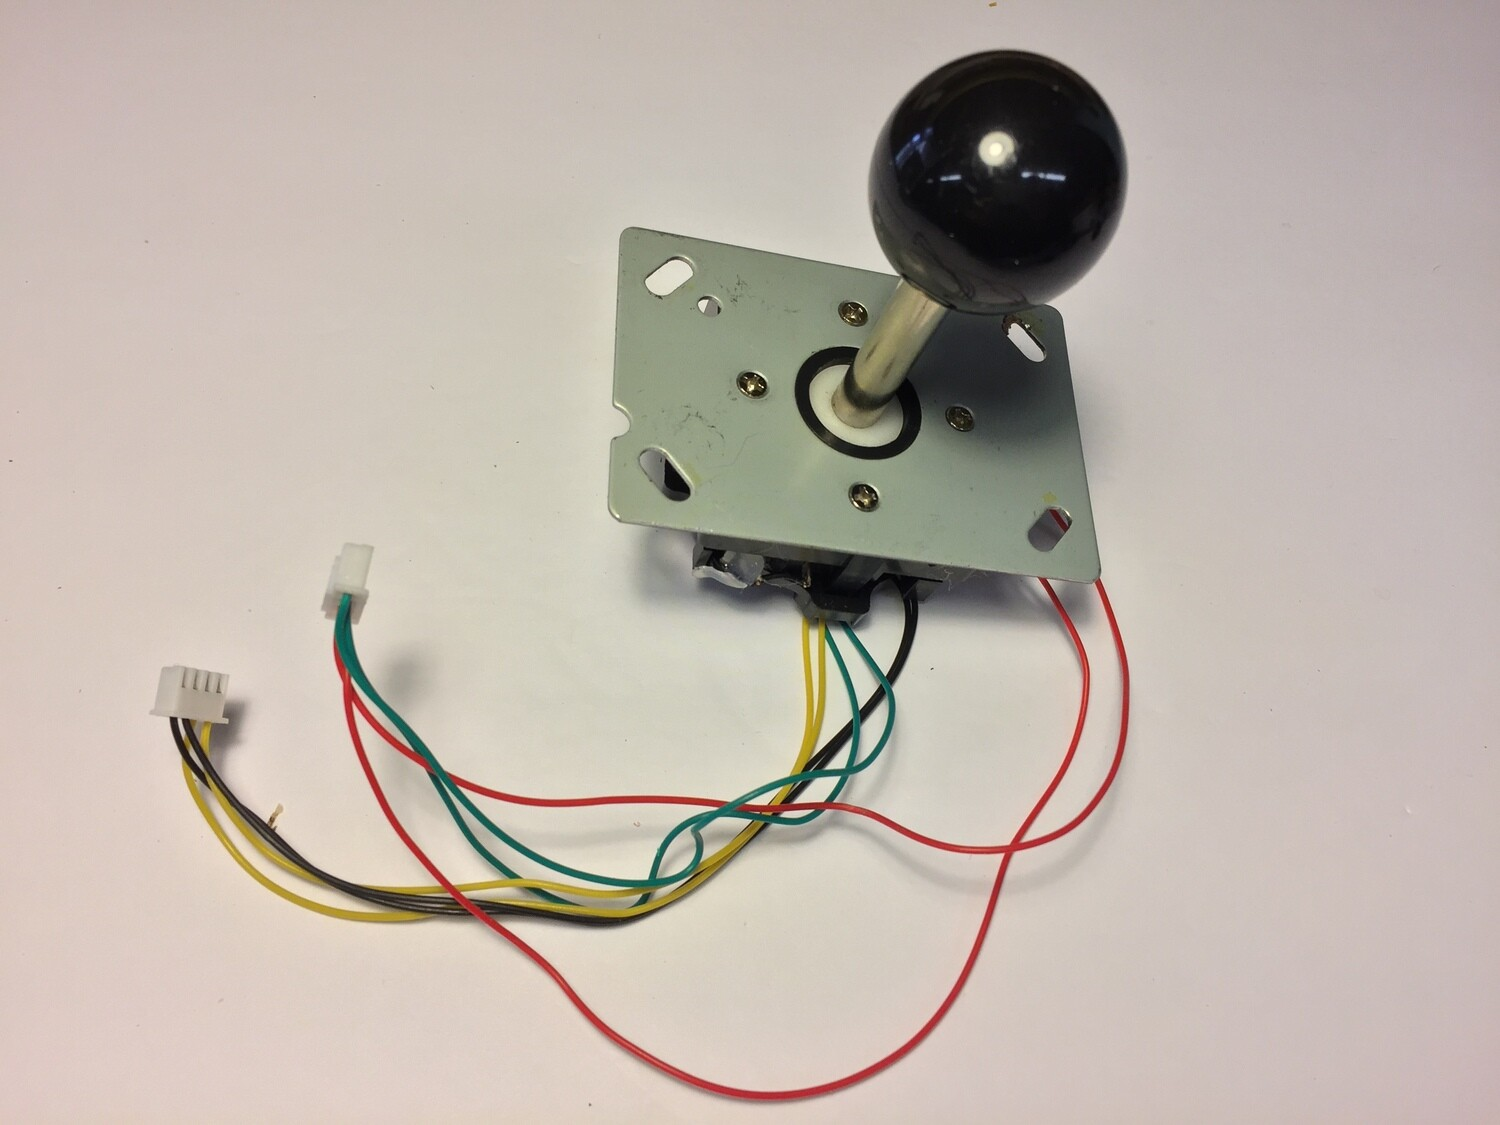 Standard A1UP Joystick with Black Ball top - NEW CONDITION